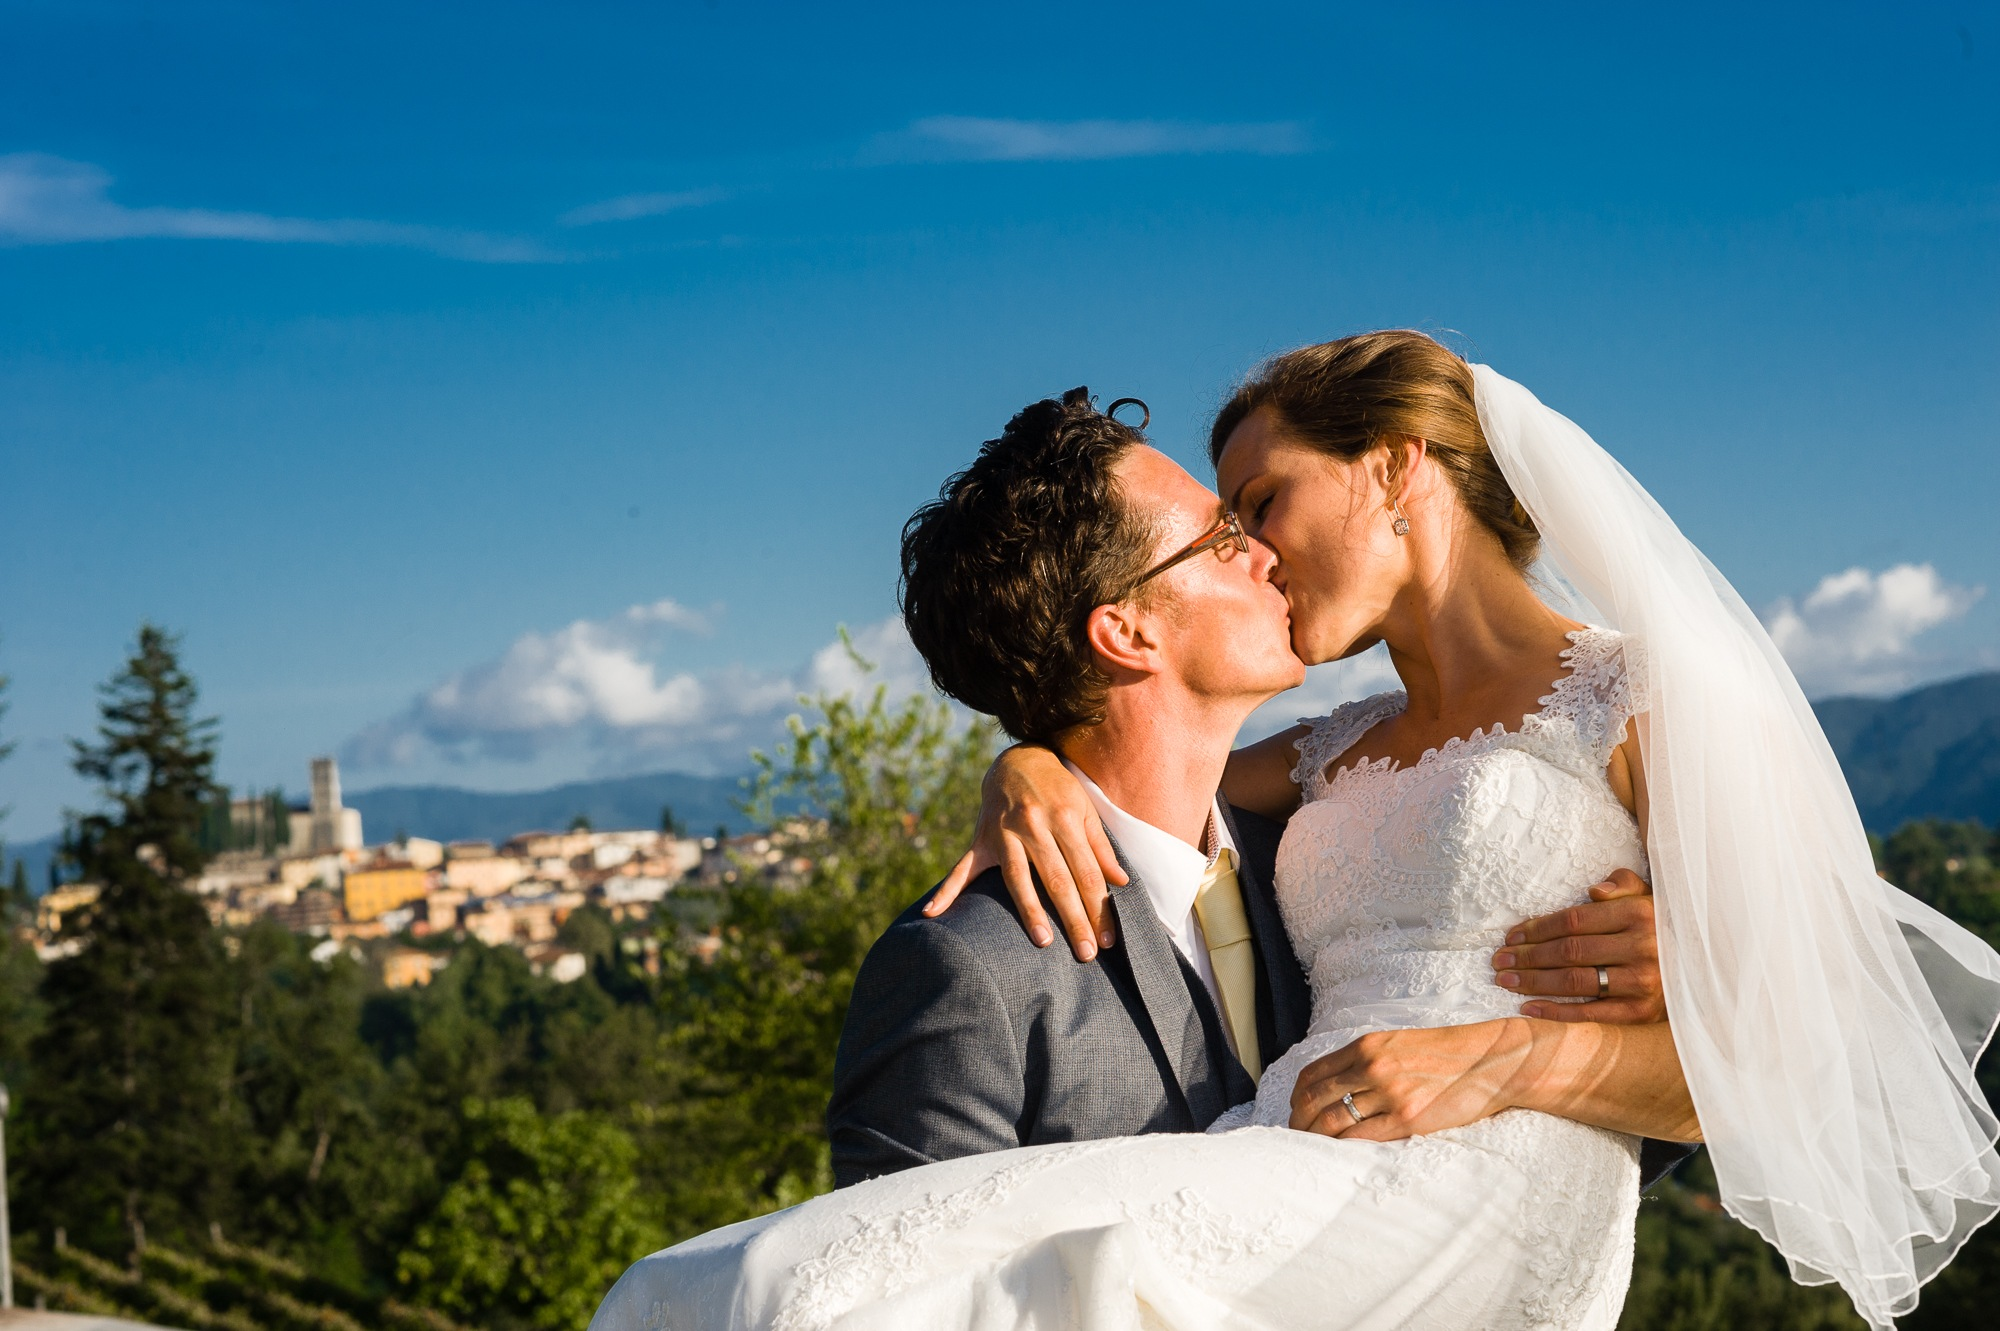 Bespoke Italian weddings